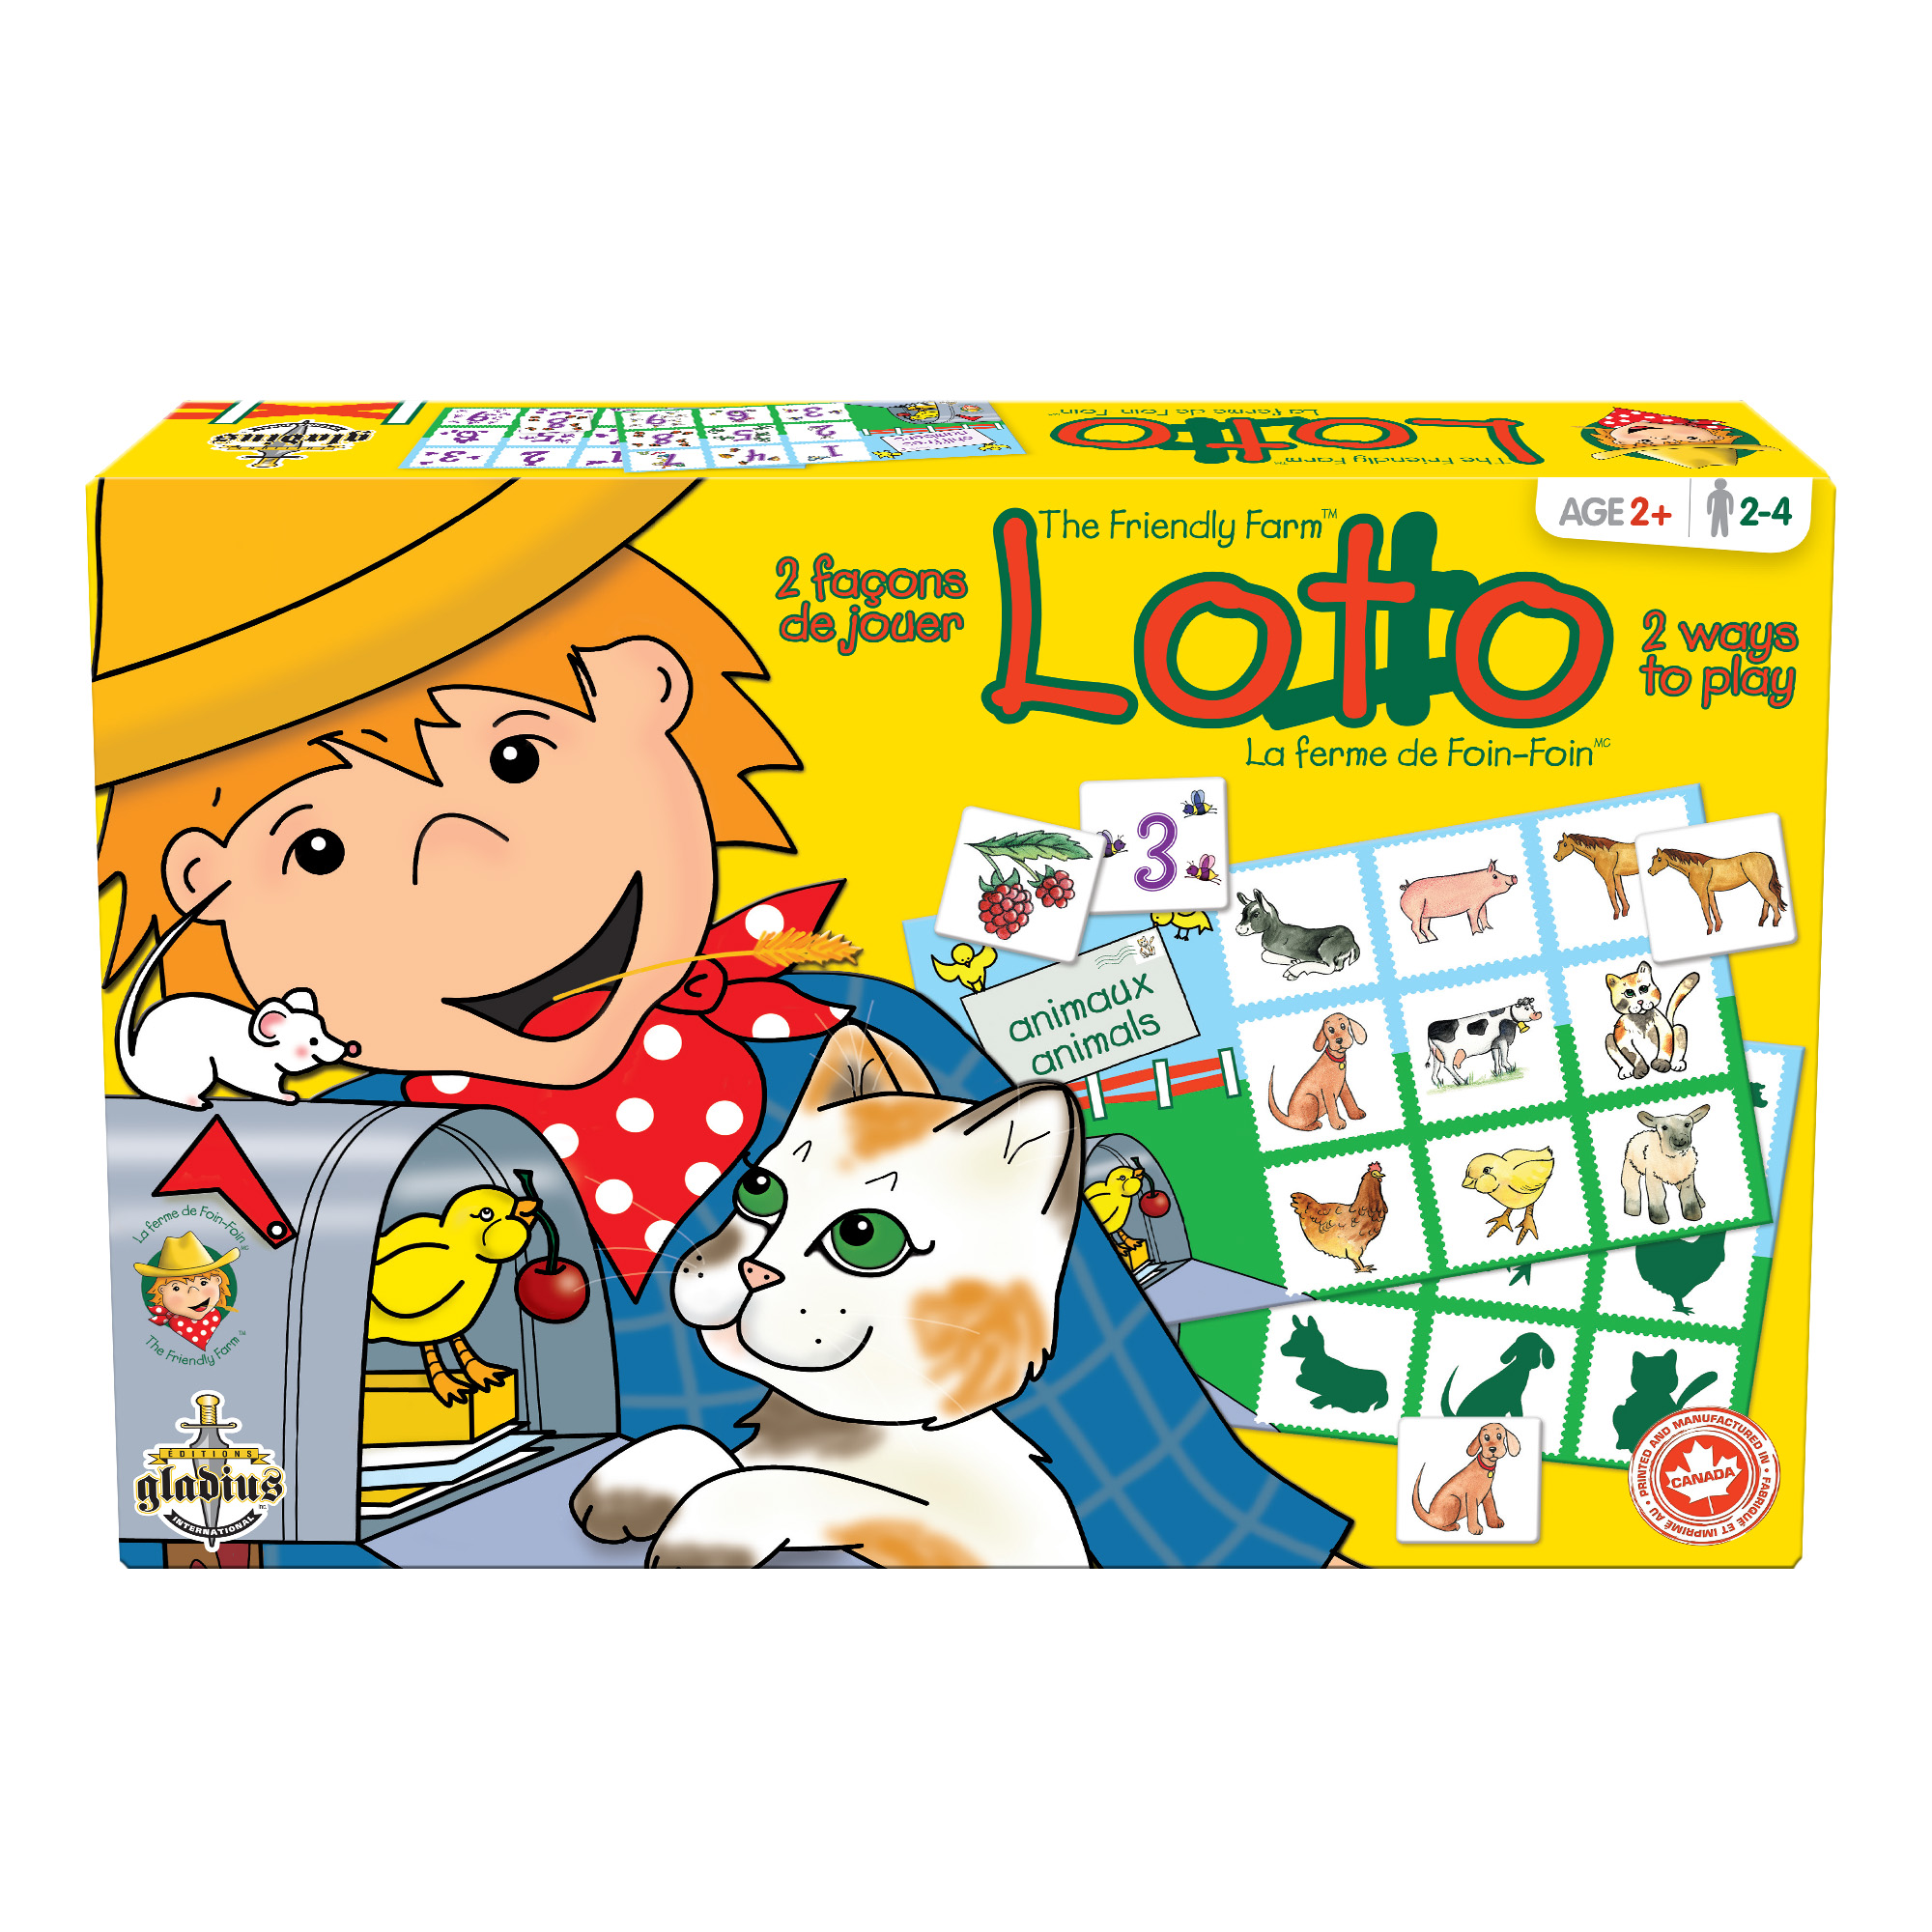 Loto - La Ferme de Foin-Foin boîte / Lotto - The Friendly Farm box